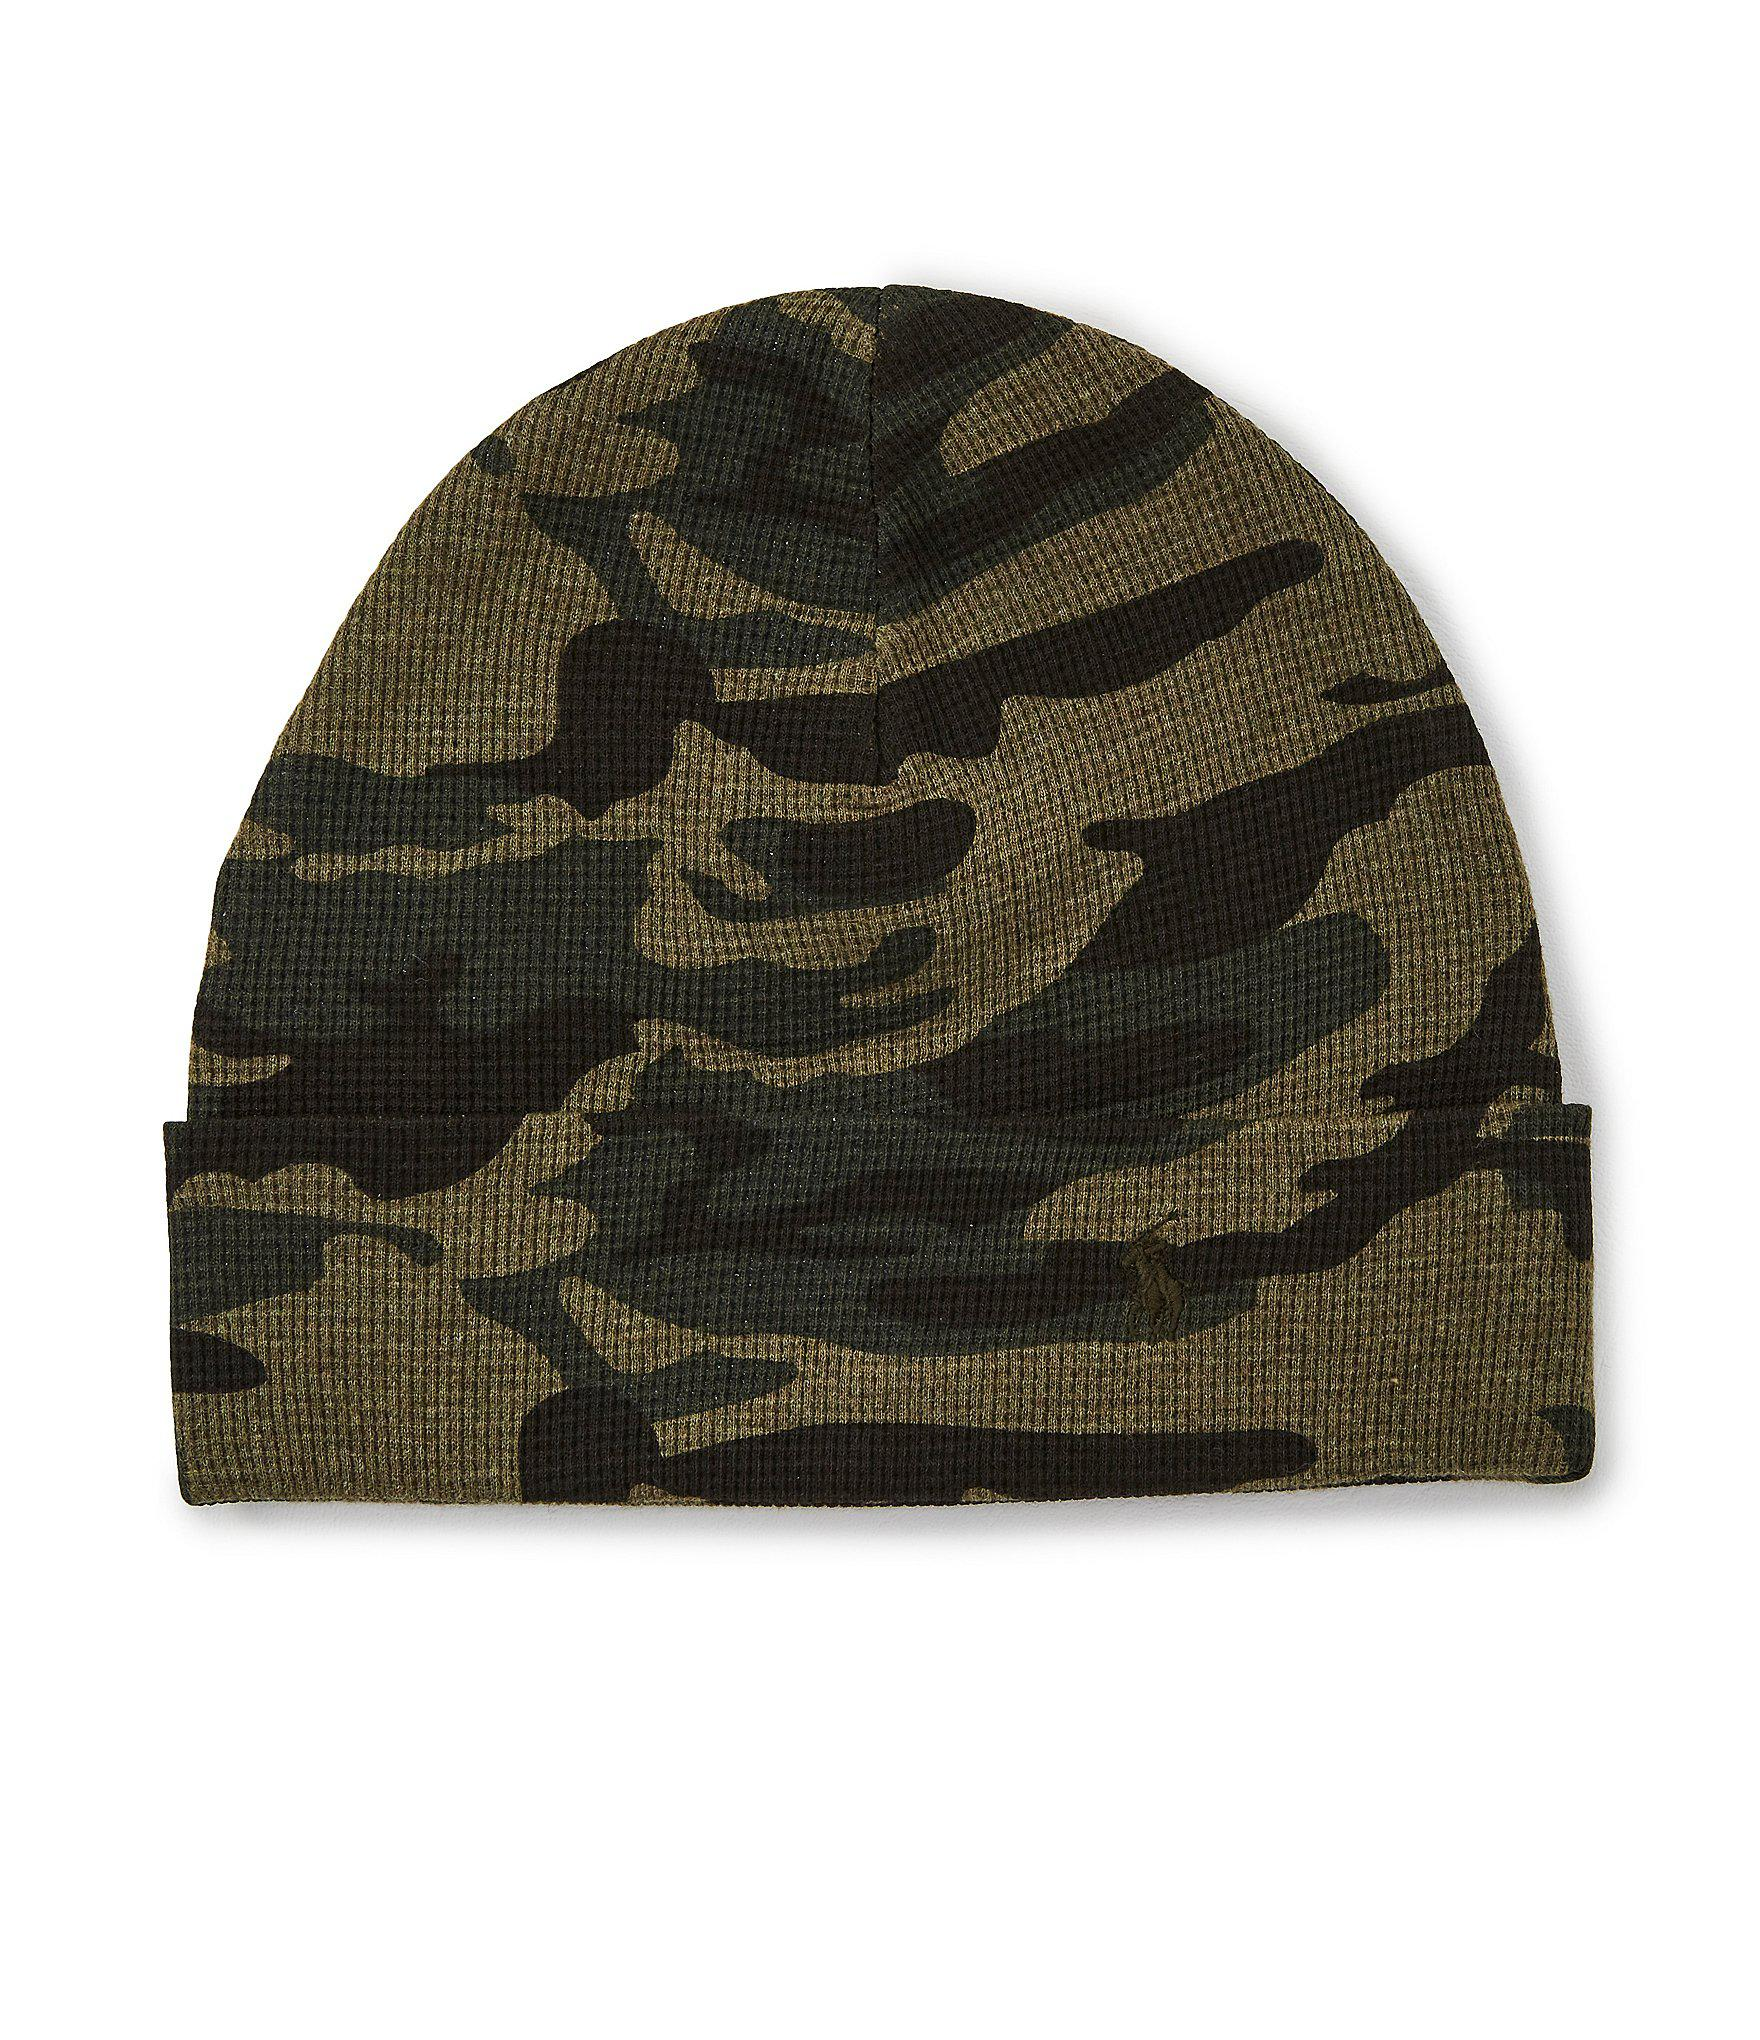 da06f25a Lyst - Polo Ralph Lauren Men's Camo Thermal Cuff Beanie in Green for Men